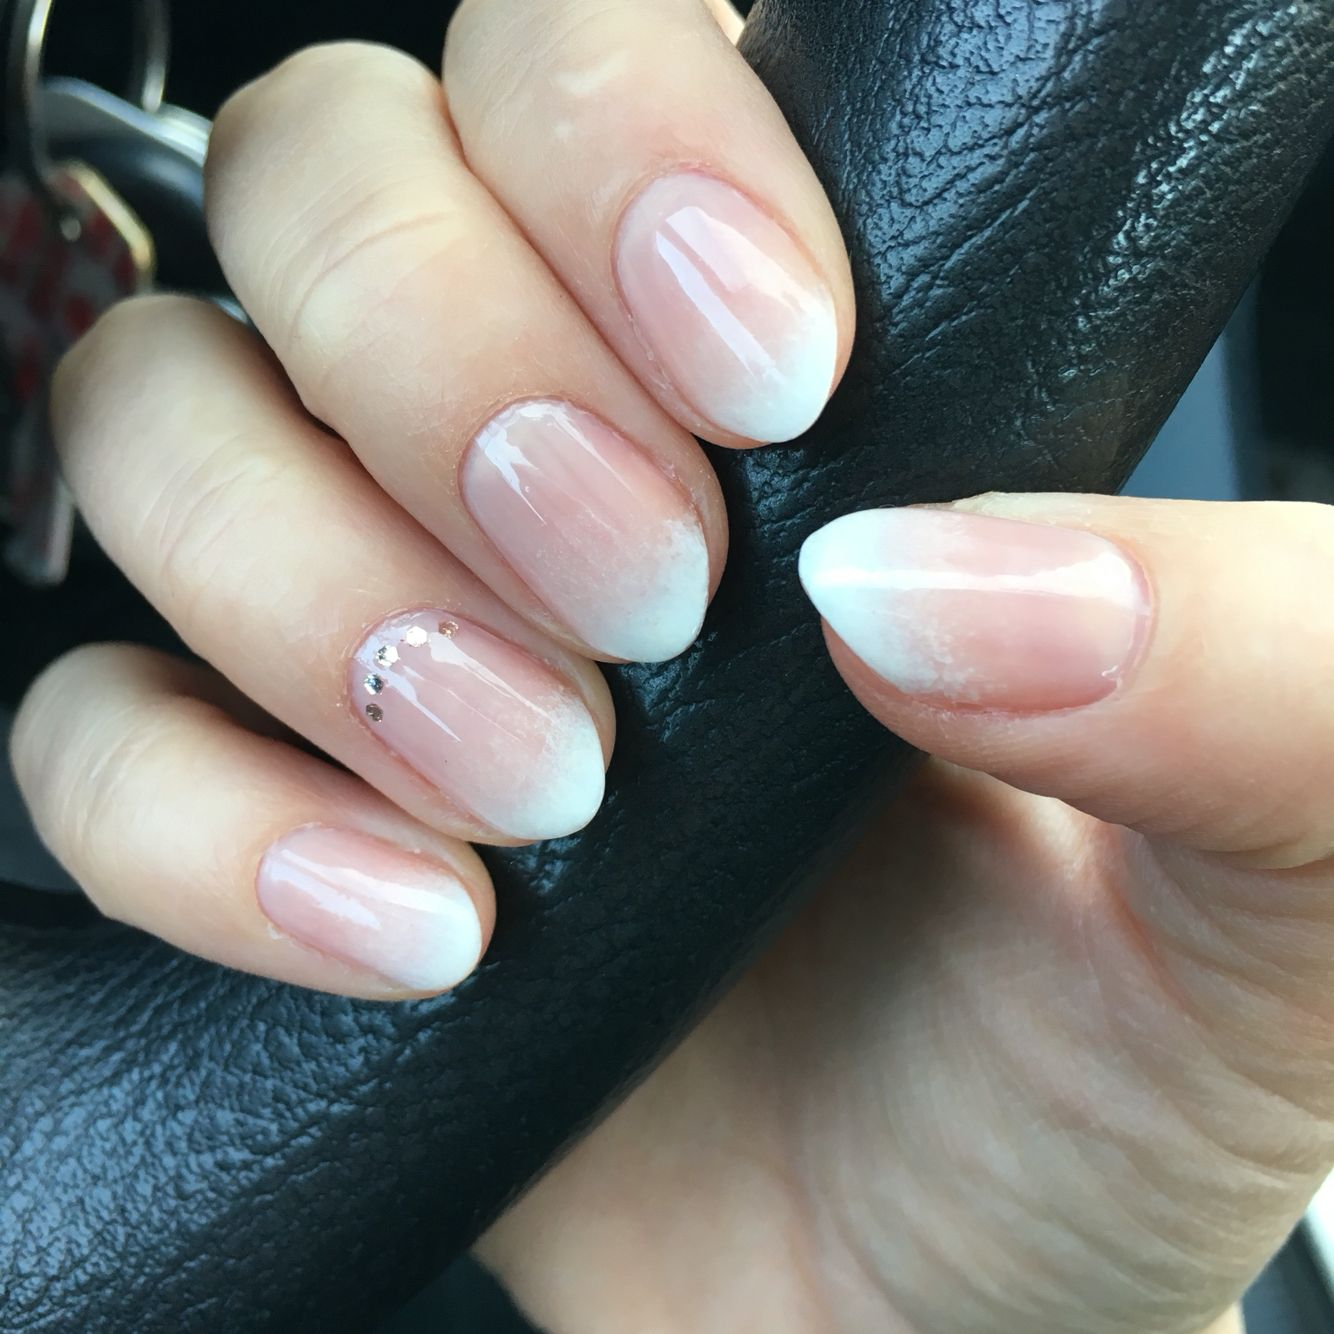 Almond Shaped Nails Ombre French Manicure Nehty